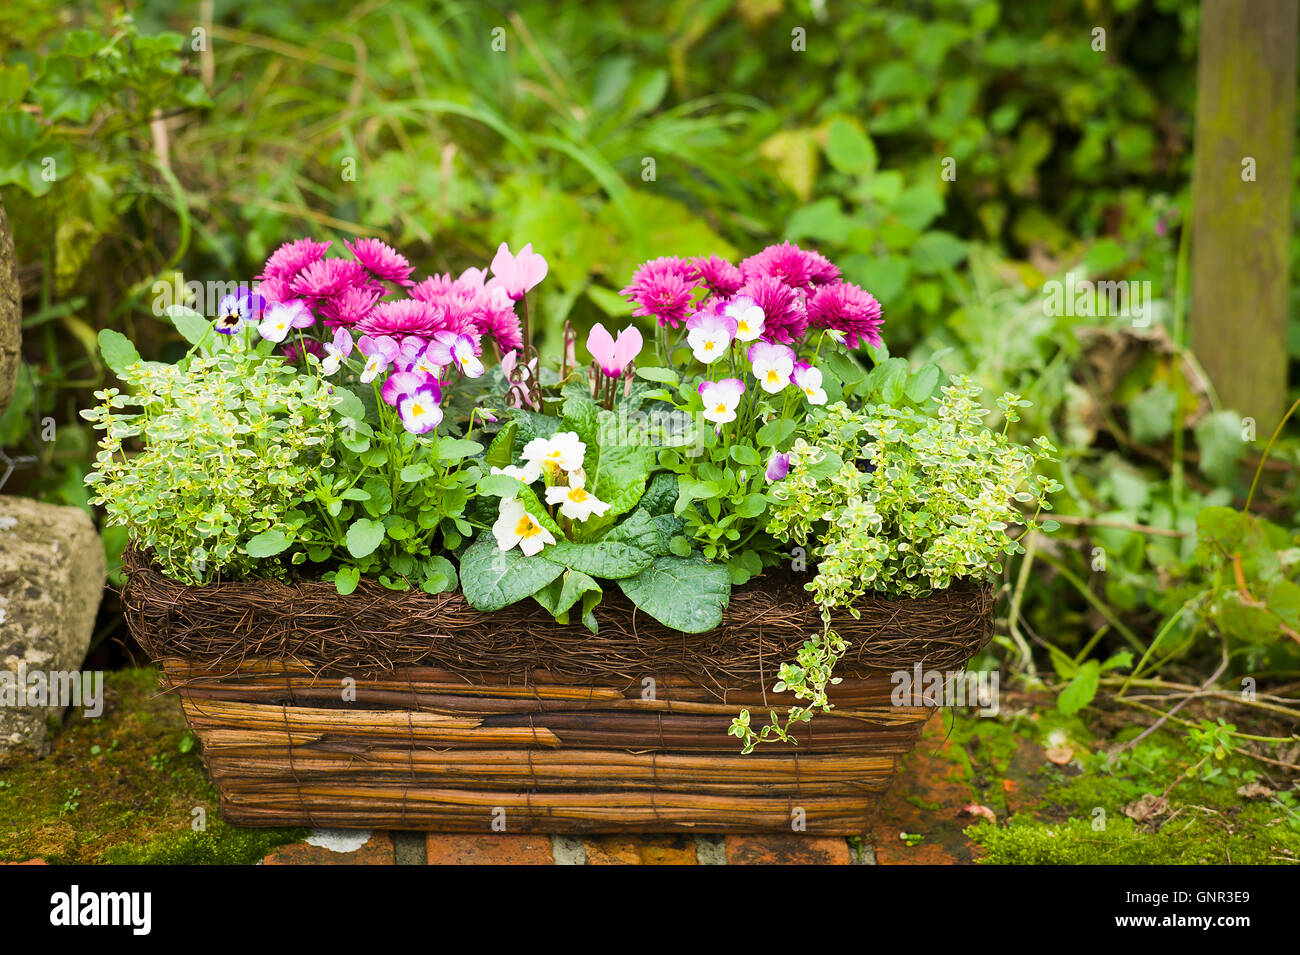 A small planter made from natural materials filled with herbs and small glowering plants - Stock Image